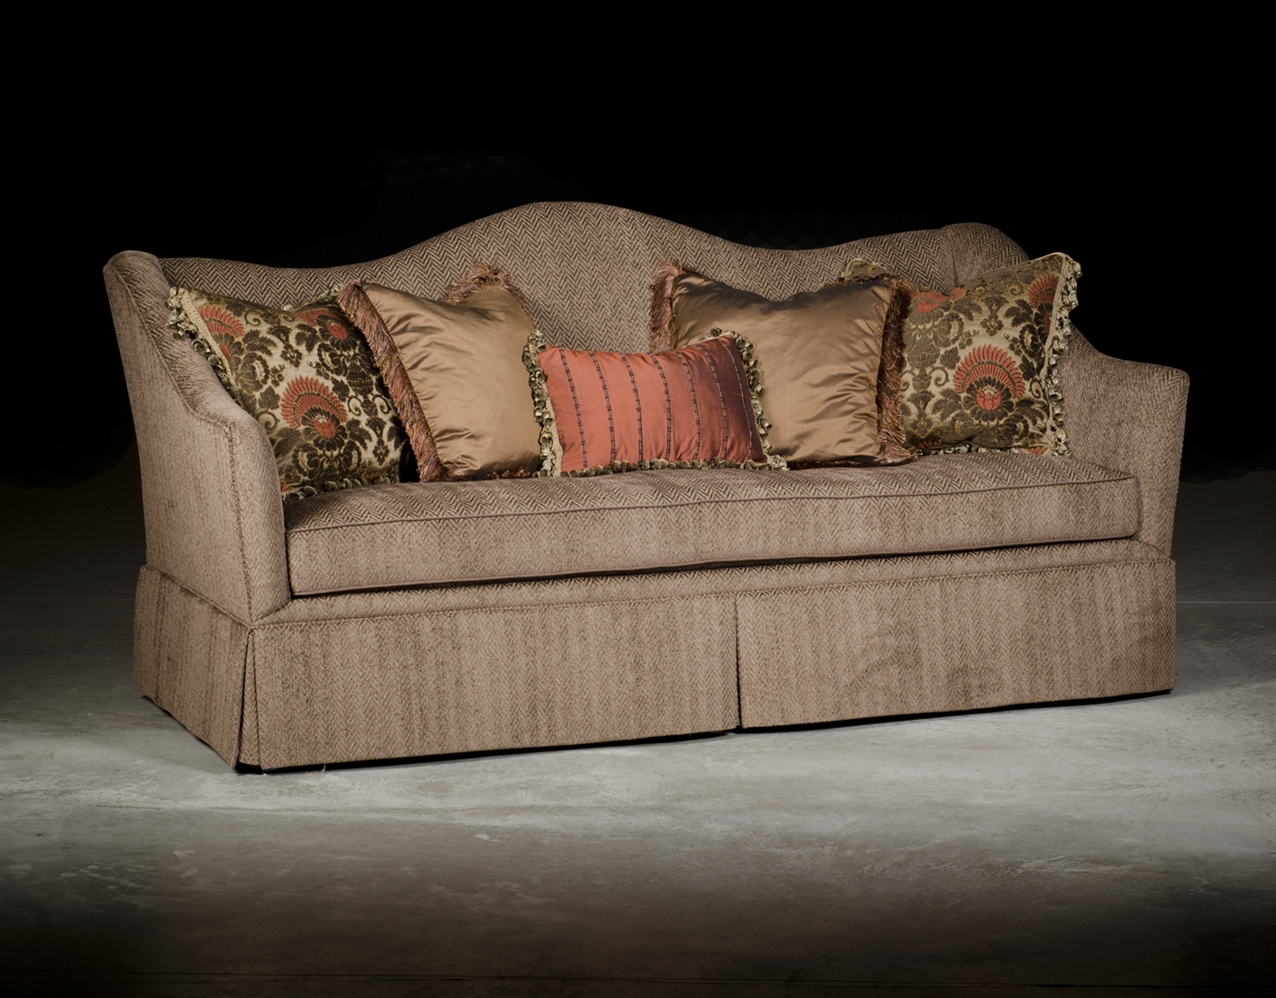 Best value sofa luxury upholstered furniture for Best quality upholstered furniture